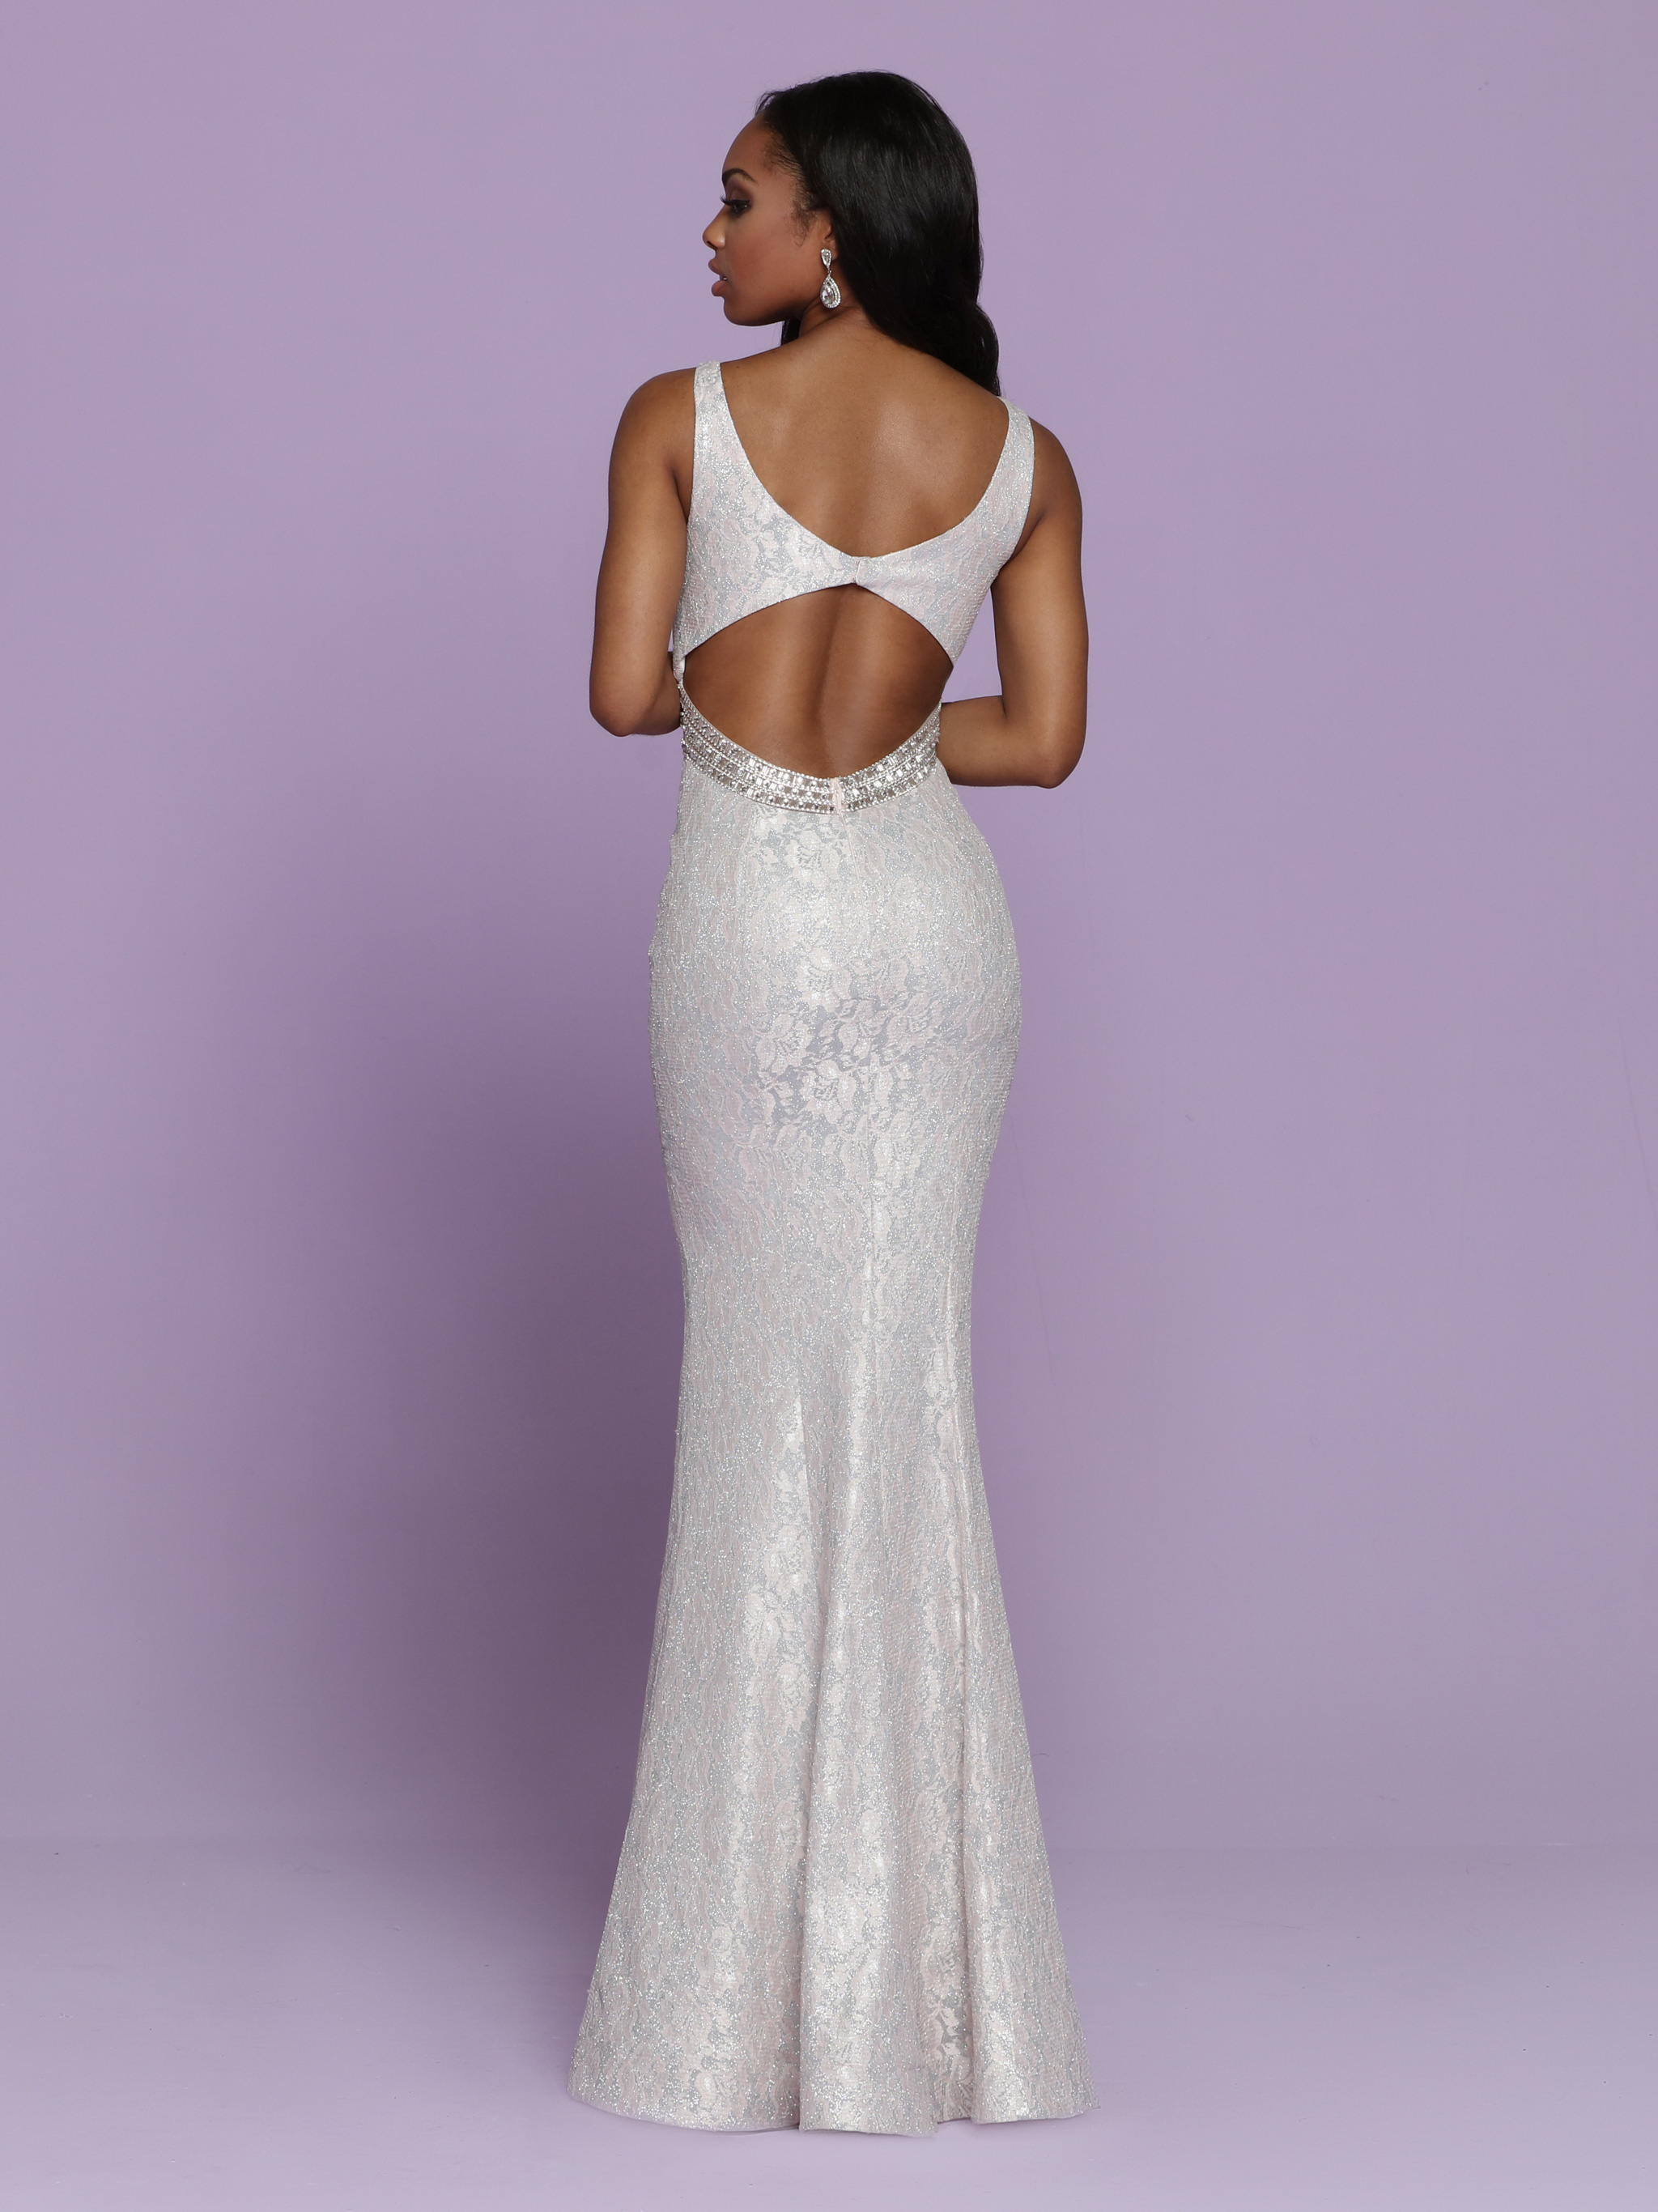 Image showing back view of style #72120